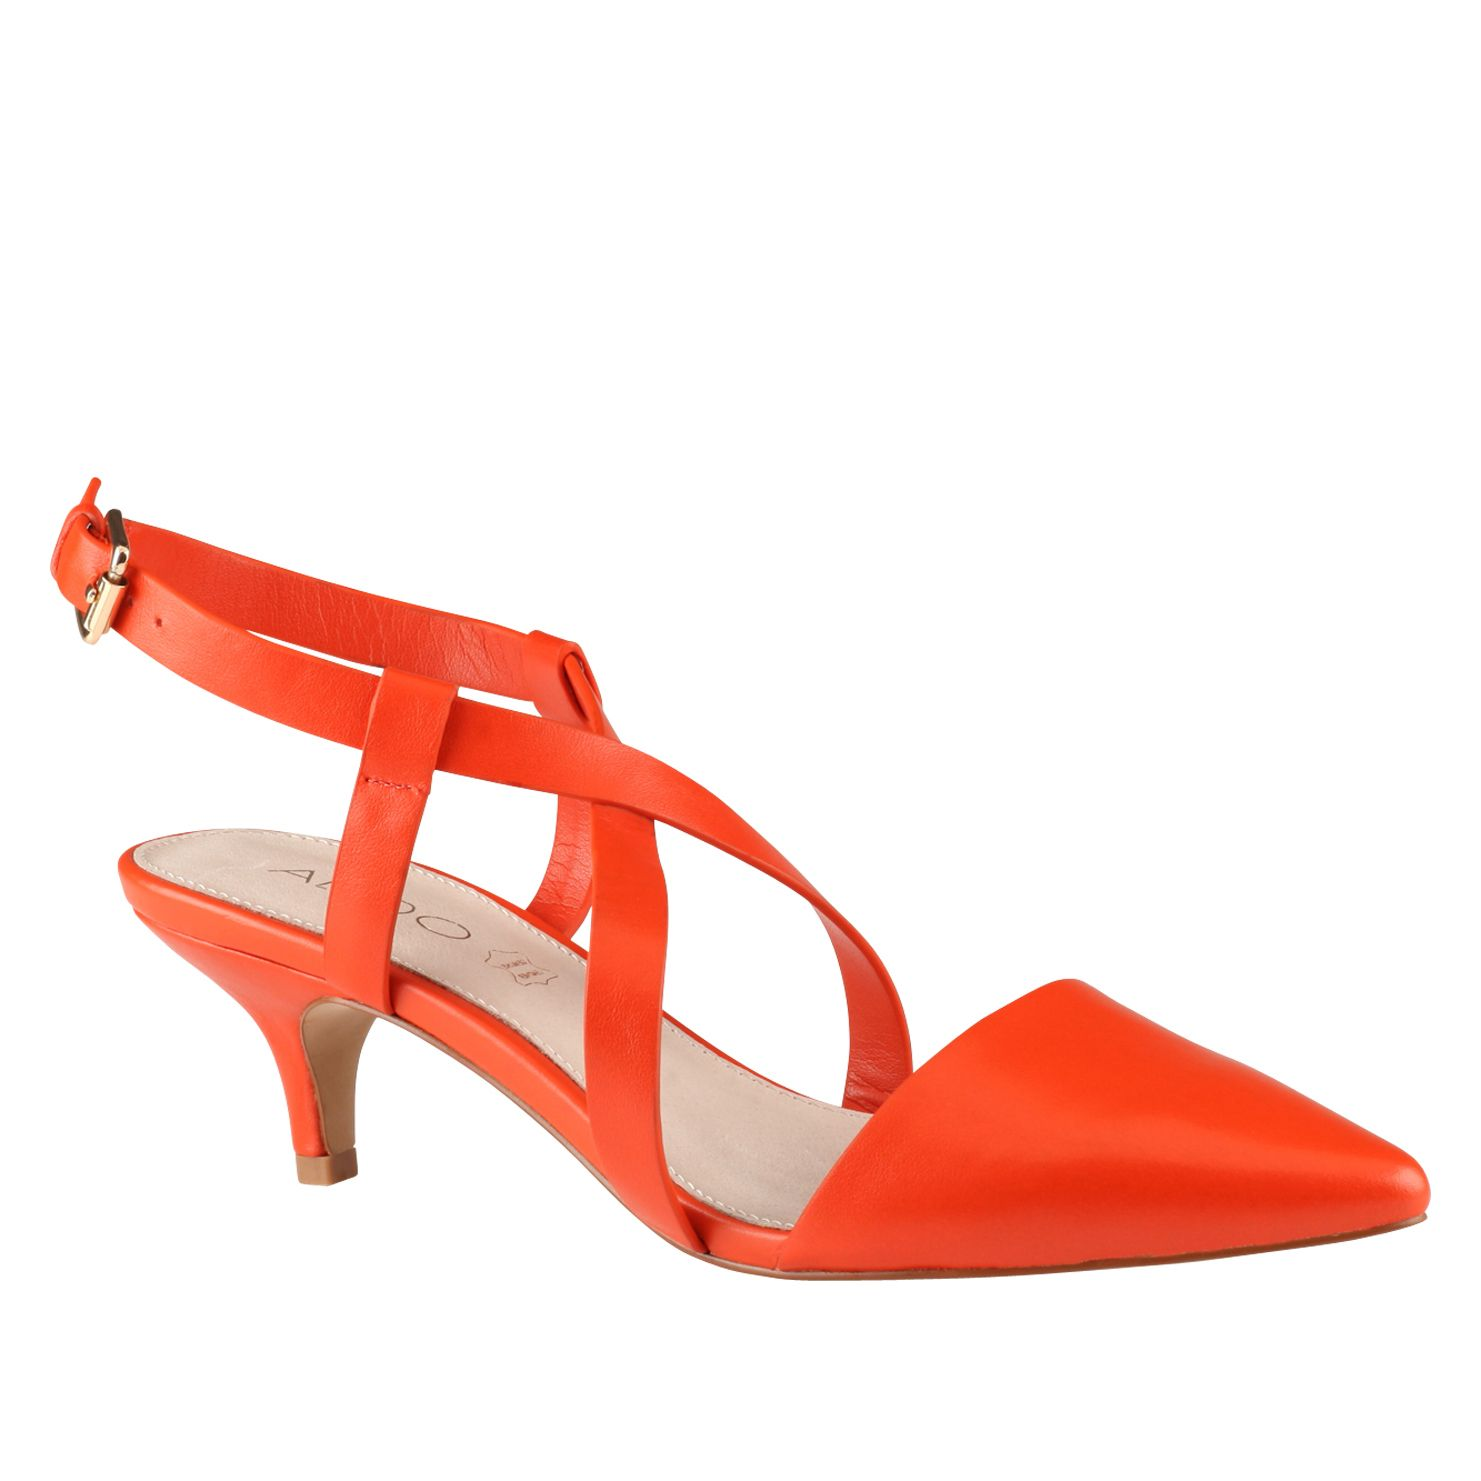 Umaniel pointed toe strap court shoes